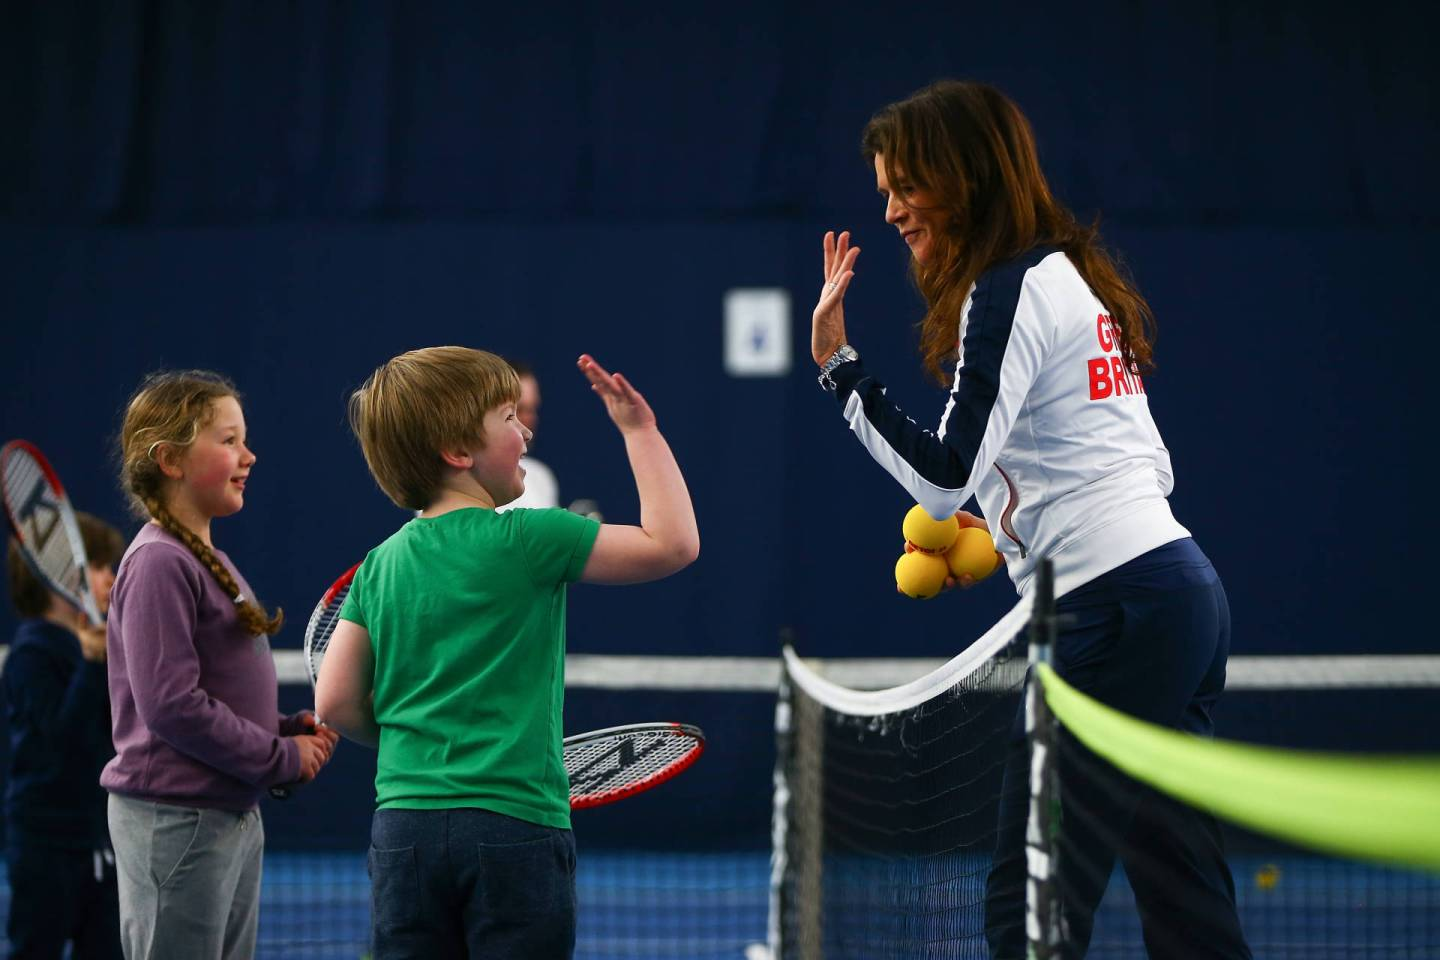 """BIRMINGHAM, ENGLAND - MARCH 05: Tennis for Kids with Annabel Croft during day two of the Davis Cup World Group first round tie between Great Britain and Japan at Barclaycard Arena on March 5, 2016 in Birmingham, England. (Photo by Jordan Mansfield/Getty Images for LTA)"""